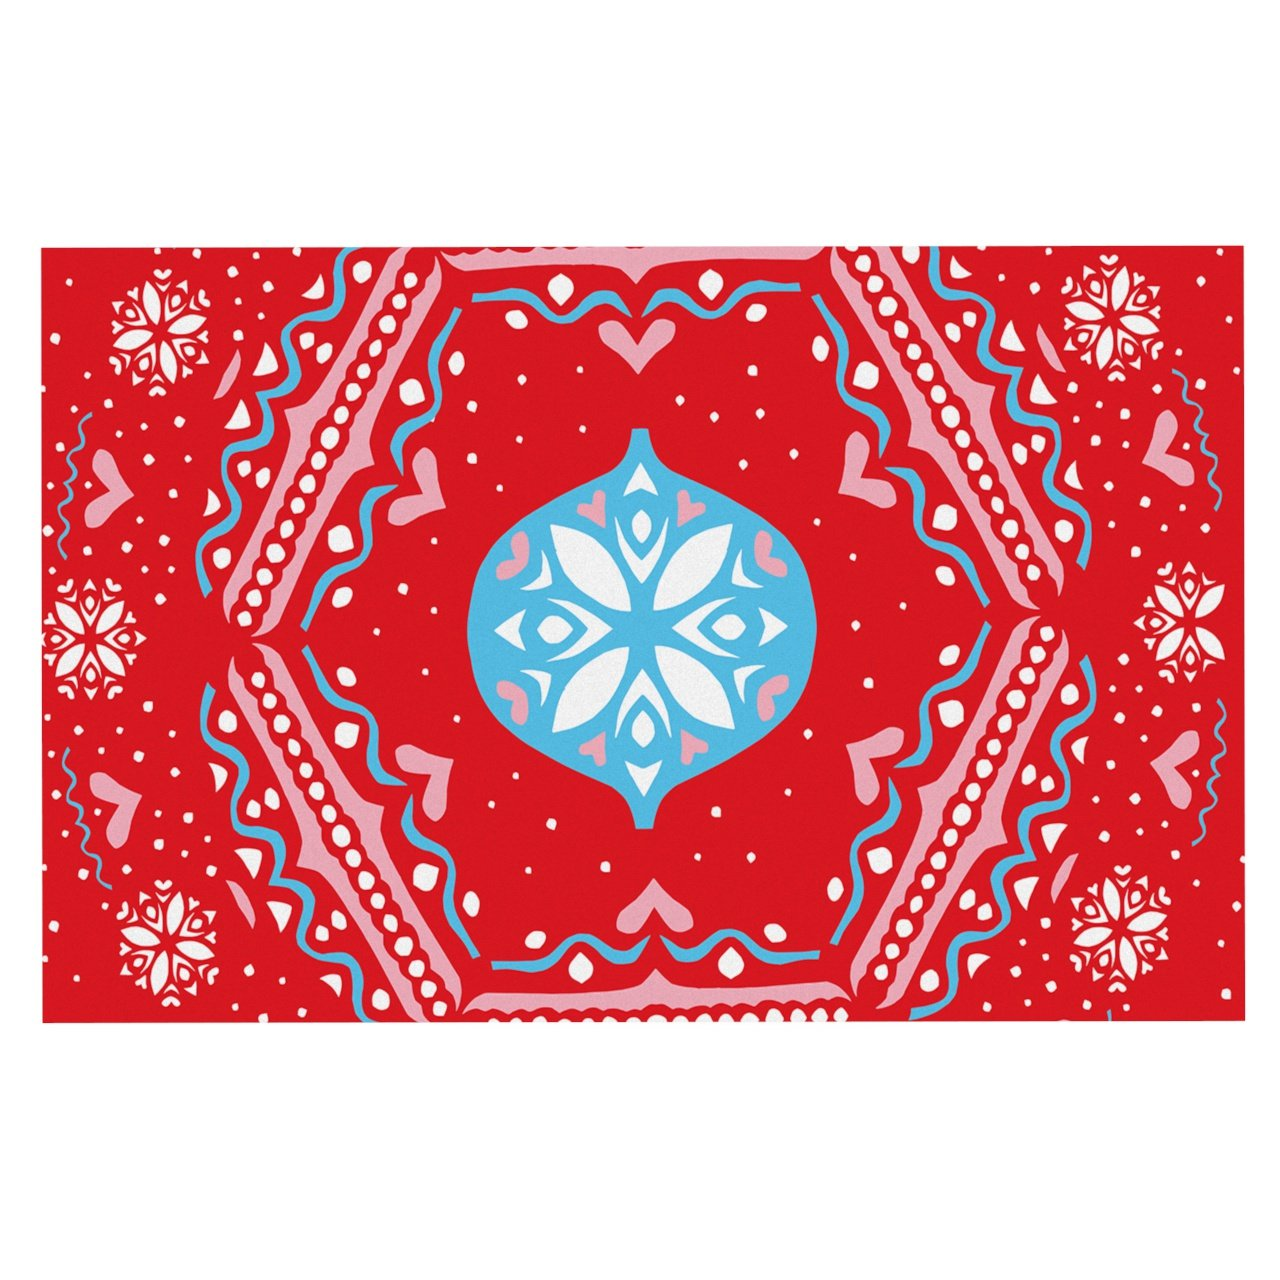 KESS InHouse Miranda Mol Snow Joy Red  bluee Dog Place Mat, 13  x 18